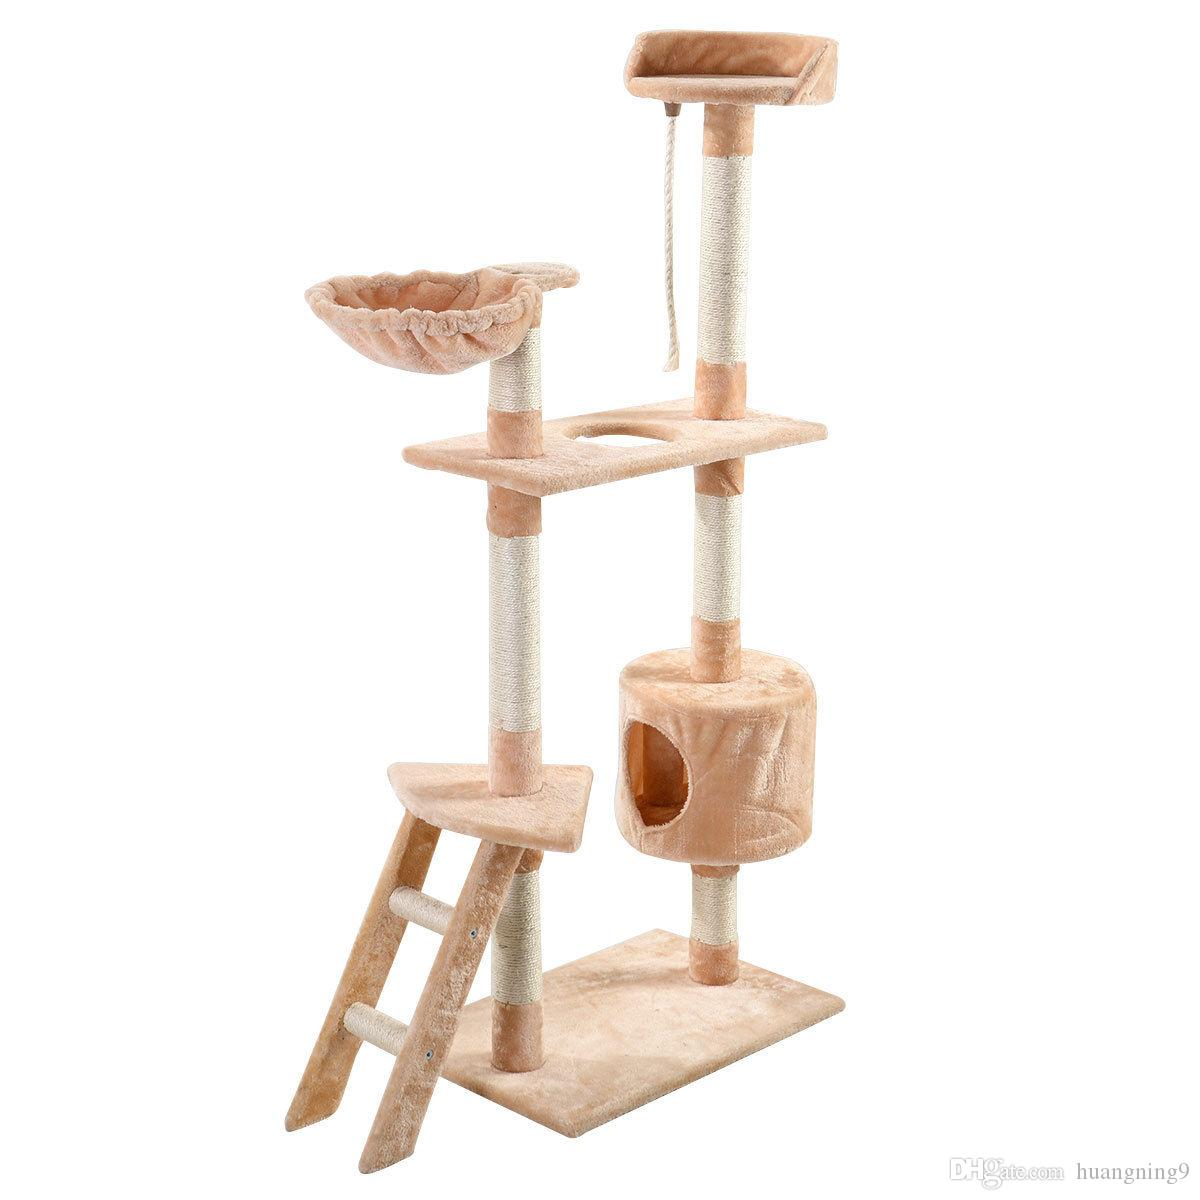 new 60 cat tree tower condo scratcher furniture kitten pet house hammock beige cat tree tower condo online with  43 72 piece on huangning9 u0027s store   dhgate      new 60 cat tree tower condo scratcher furniture kitten pet house      rh   dhgate